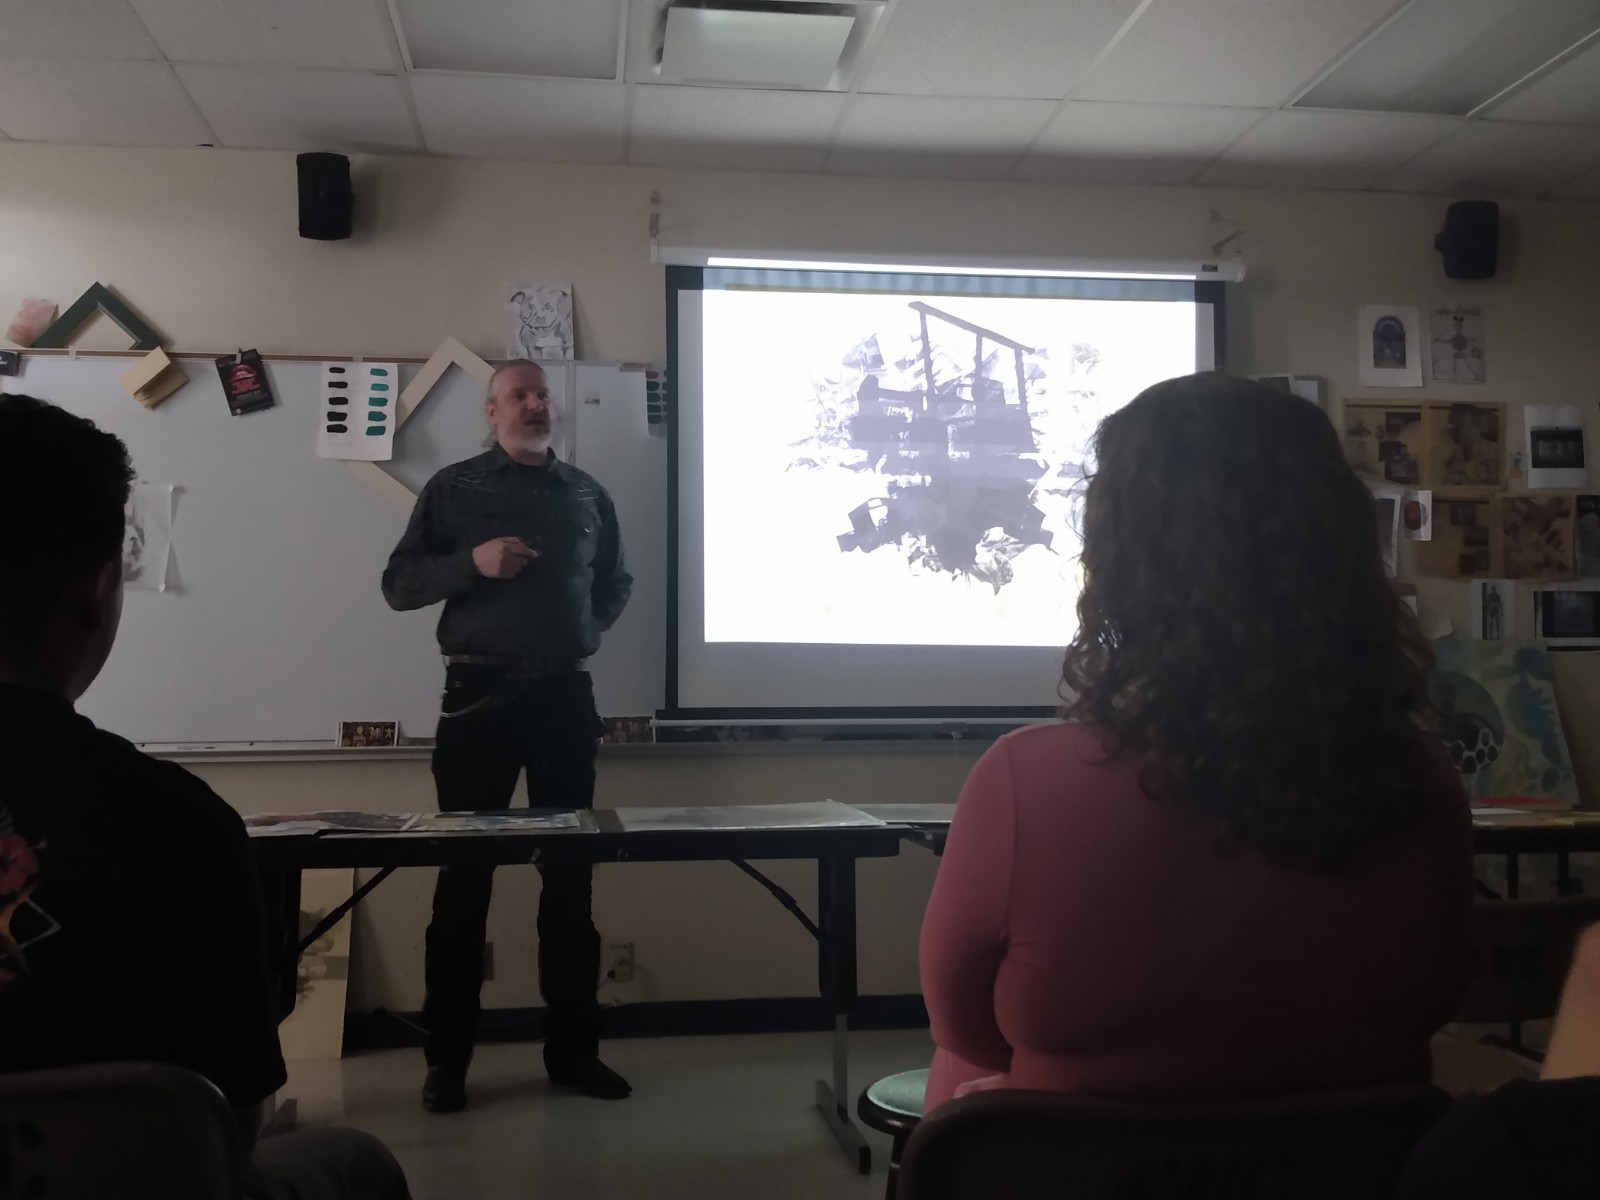 A man is presenting in front of a projector